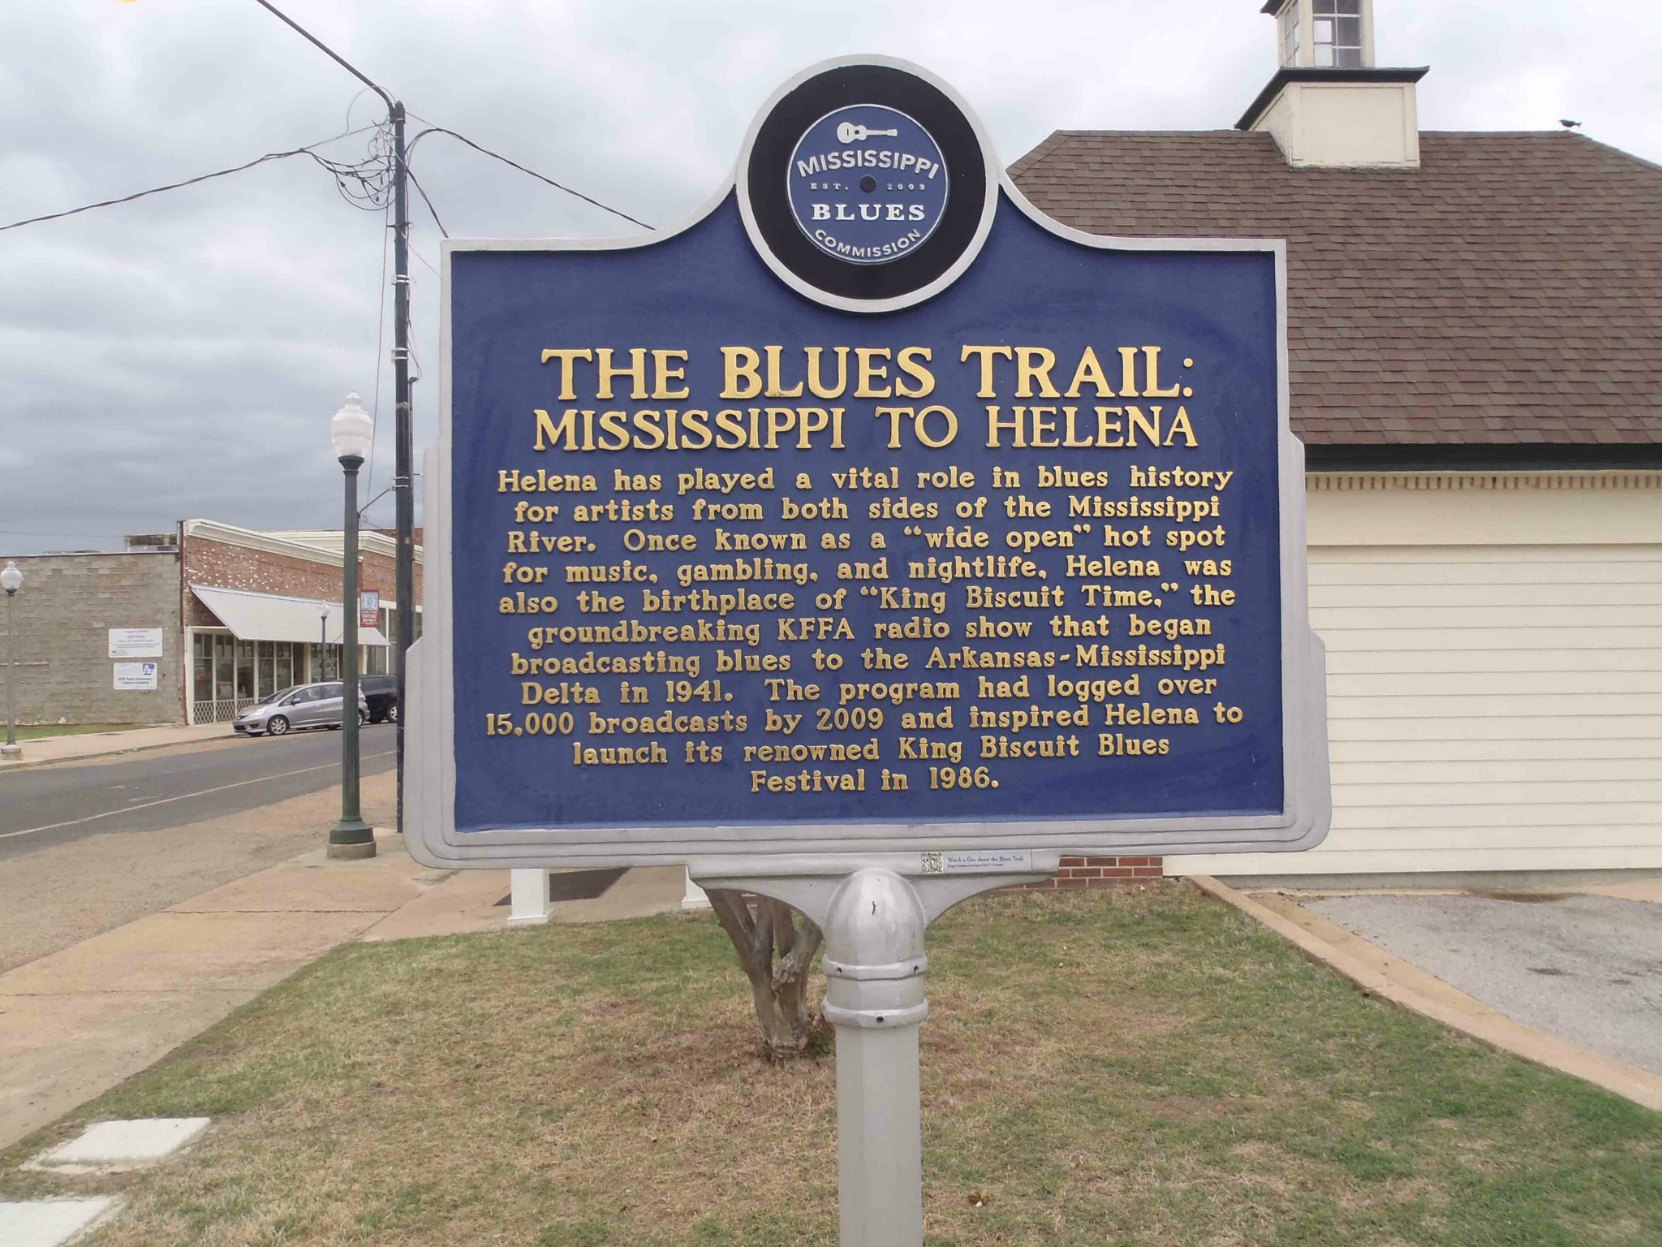 Mississippi Blues Trail marker, The Blues Trail: Mississippi To Helena, Helena, Arkansas